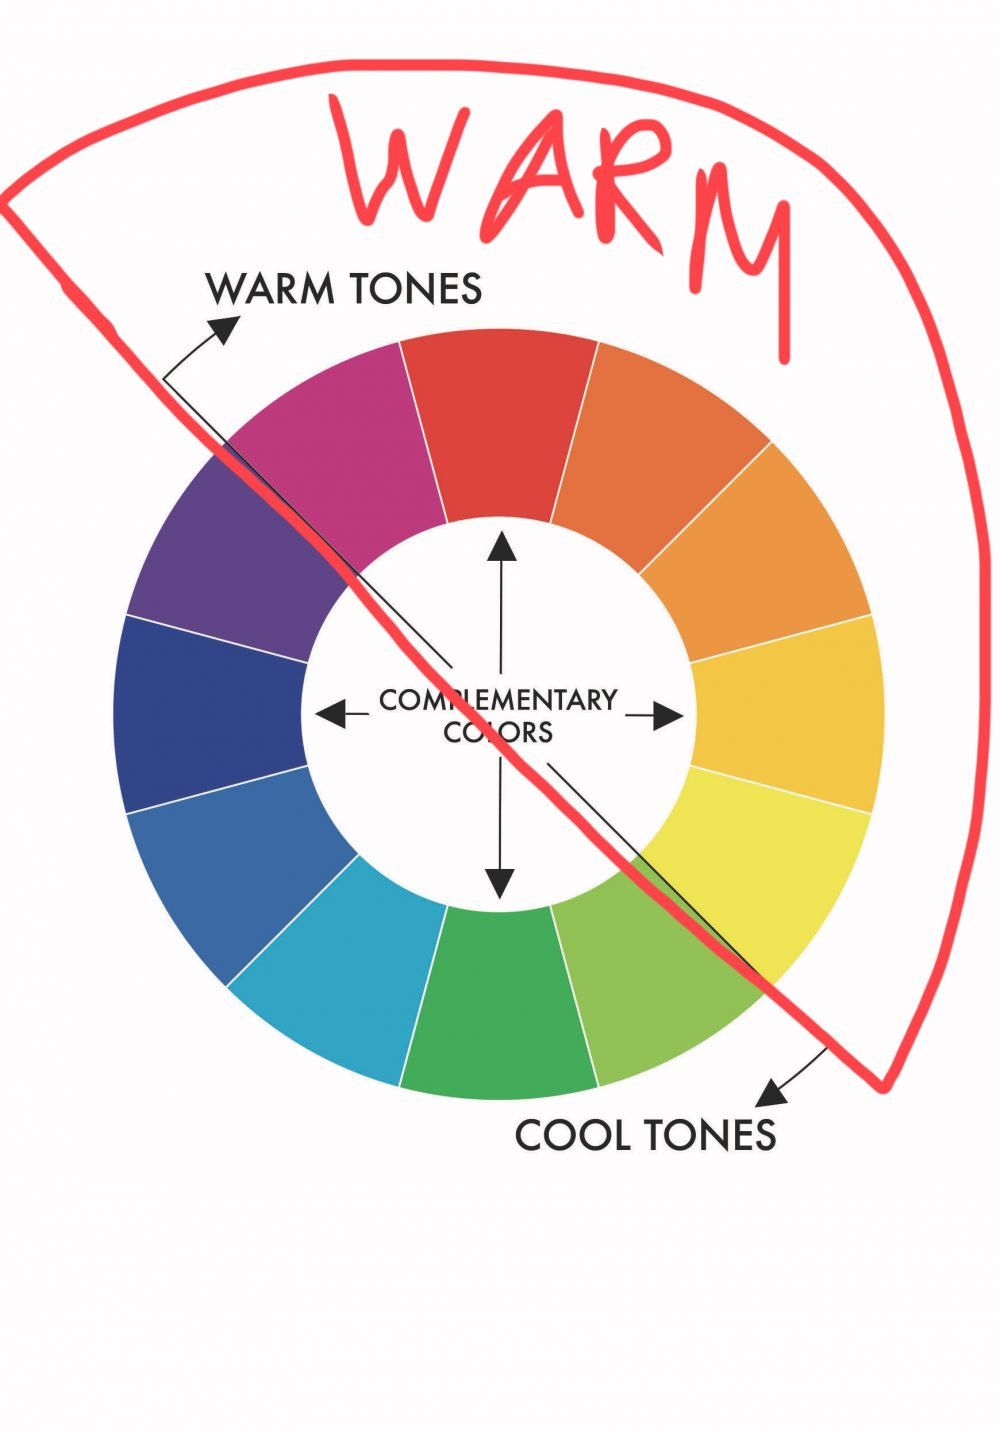 Warm tones. Red to yellow, color theory on the wheel.